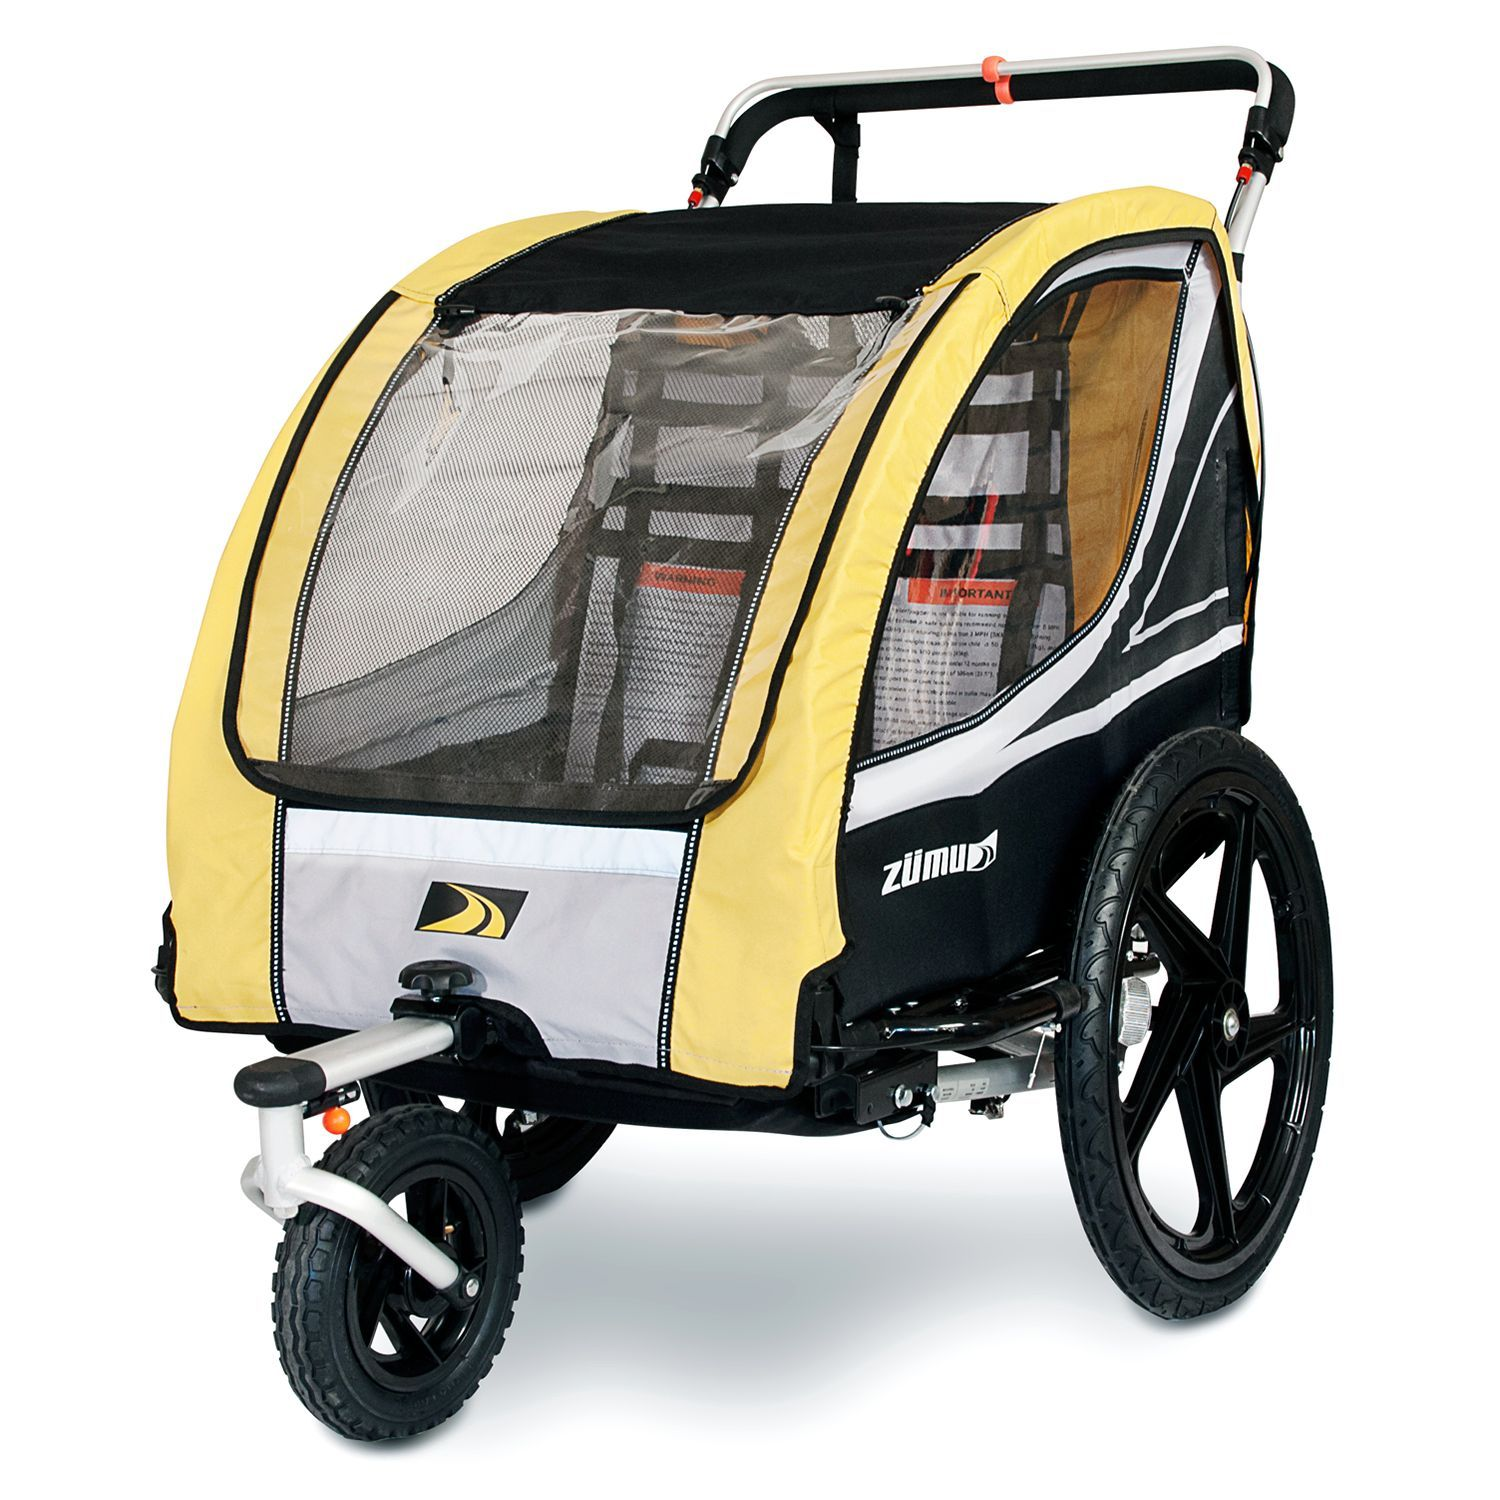 This 3in1 bike trailer doubles as a stroller/jogger